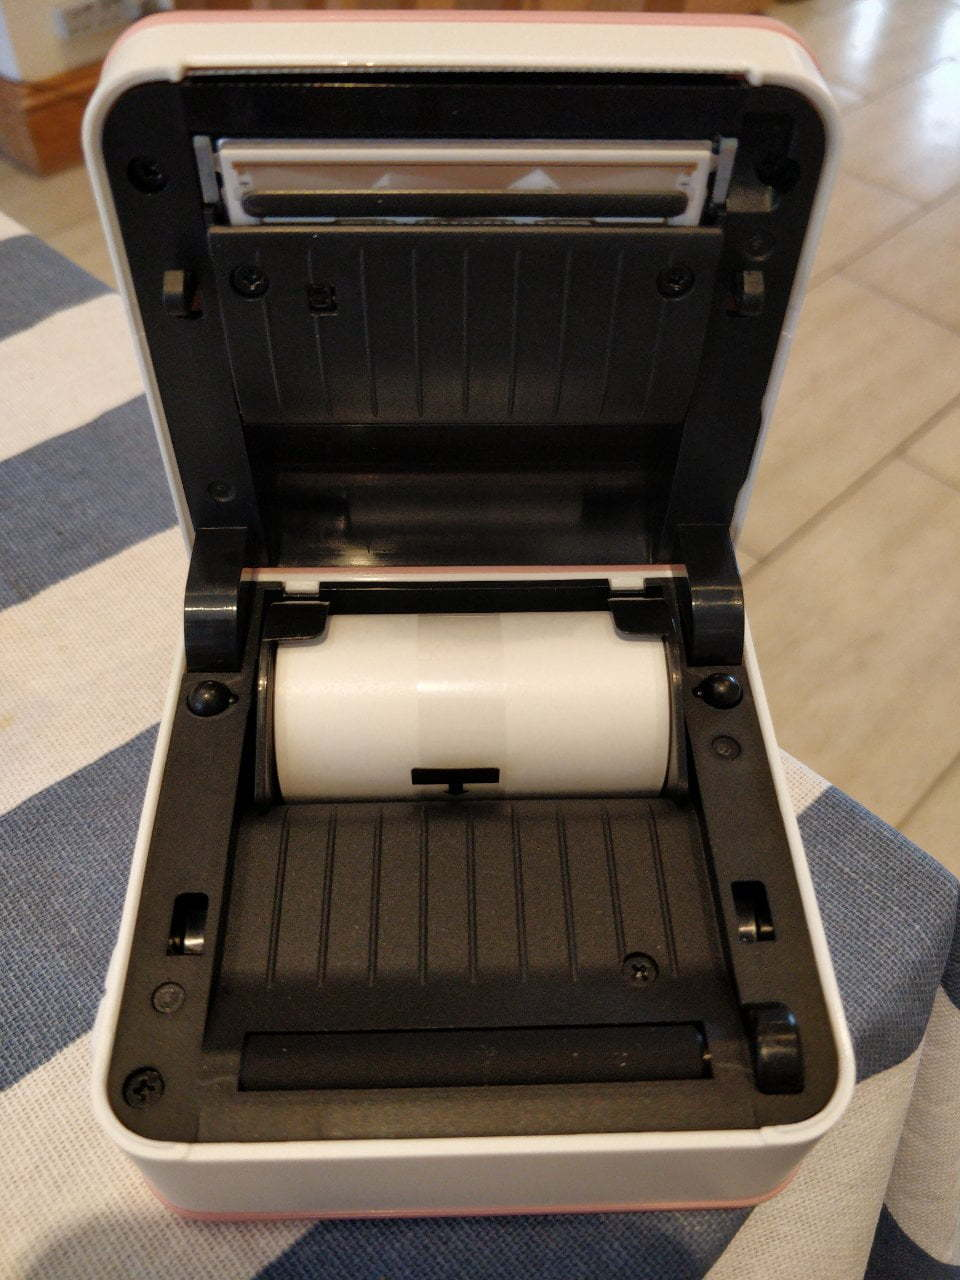 An open thermal printer with a small roll of paper.